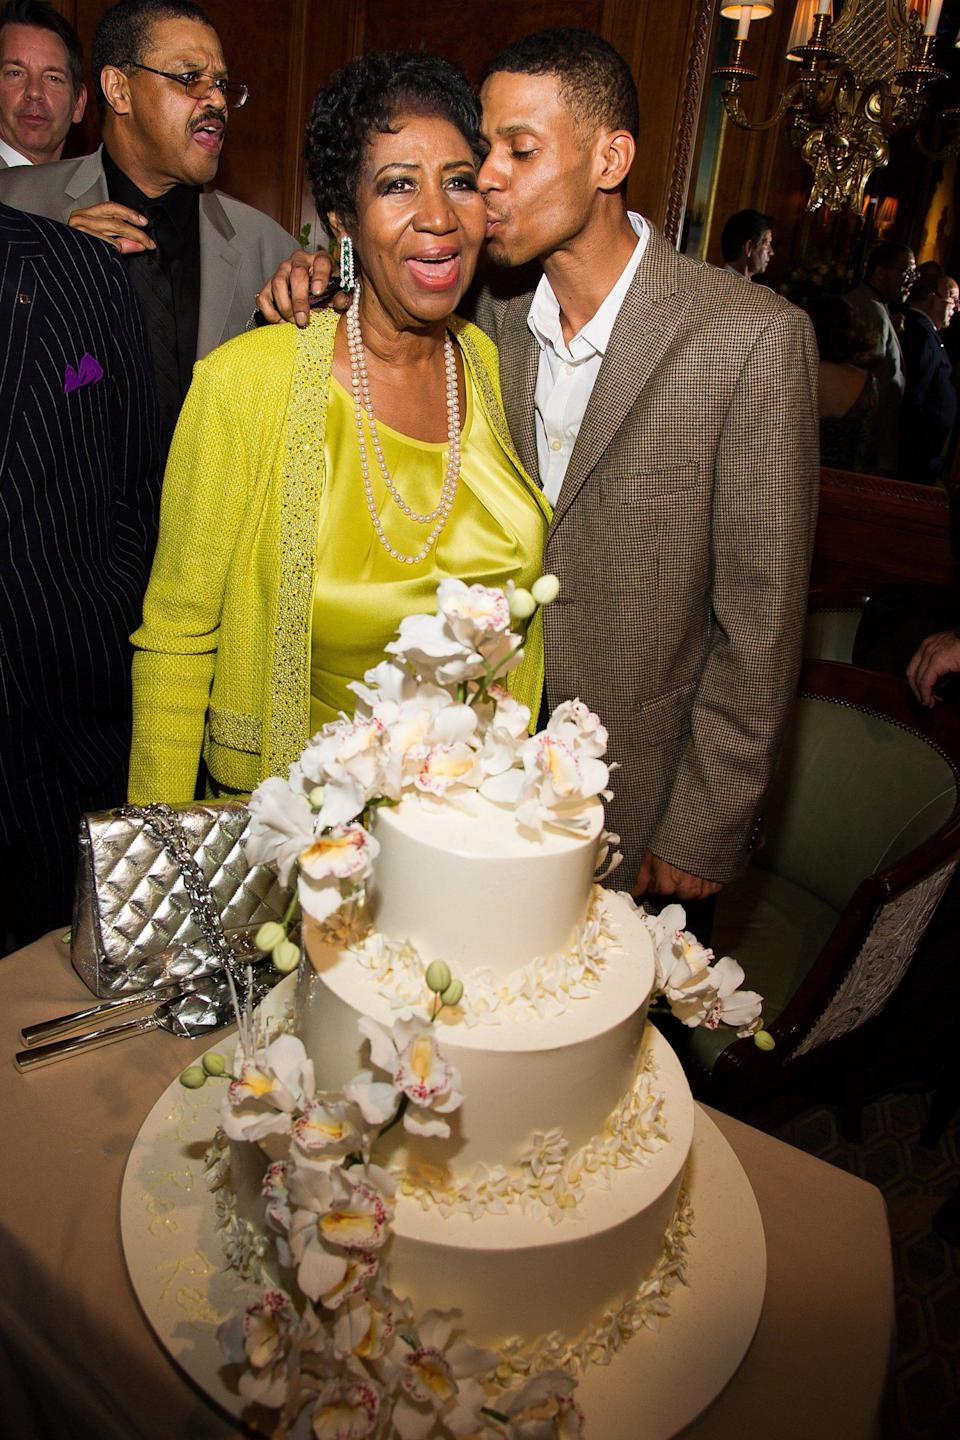 Aretha Franklin and her son Kecalf Cunningham attend her 72nd birthday celebration in March 2014 in New York.